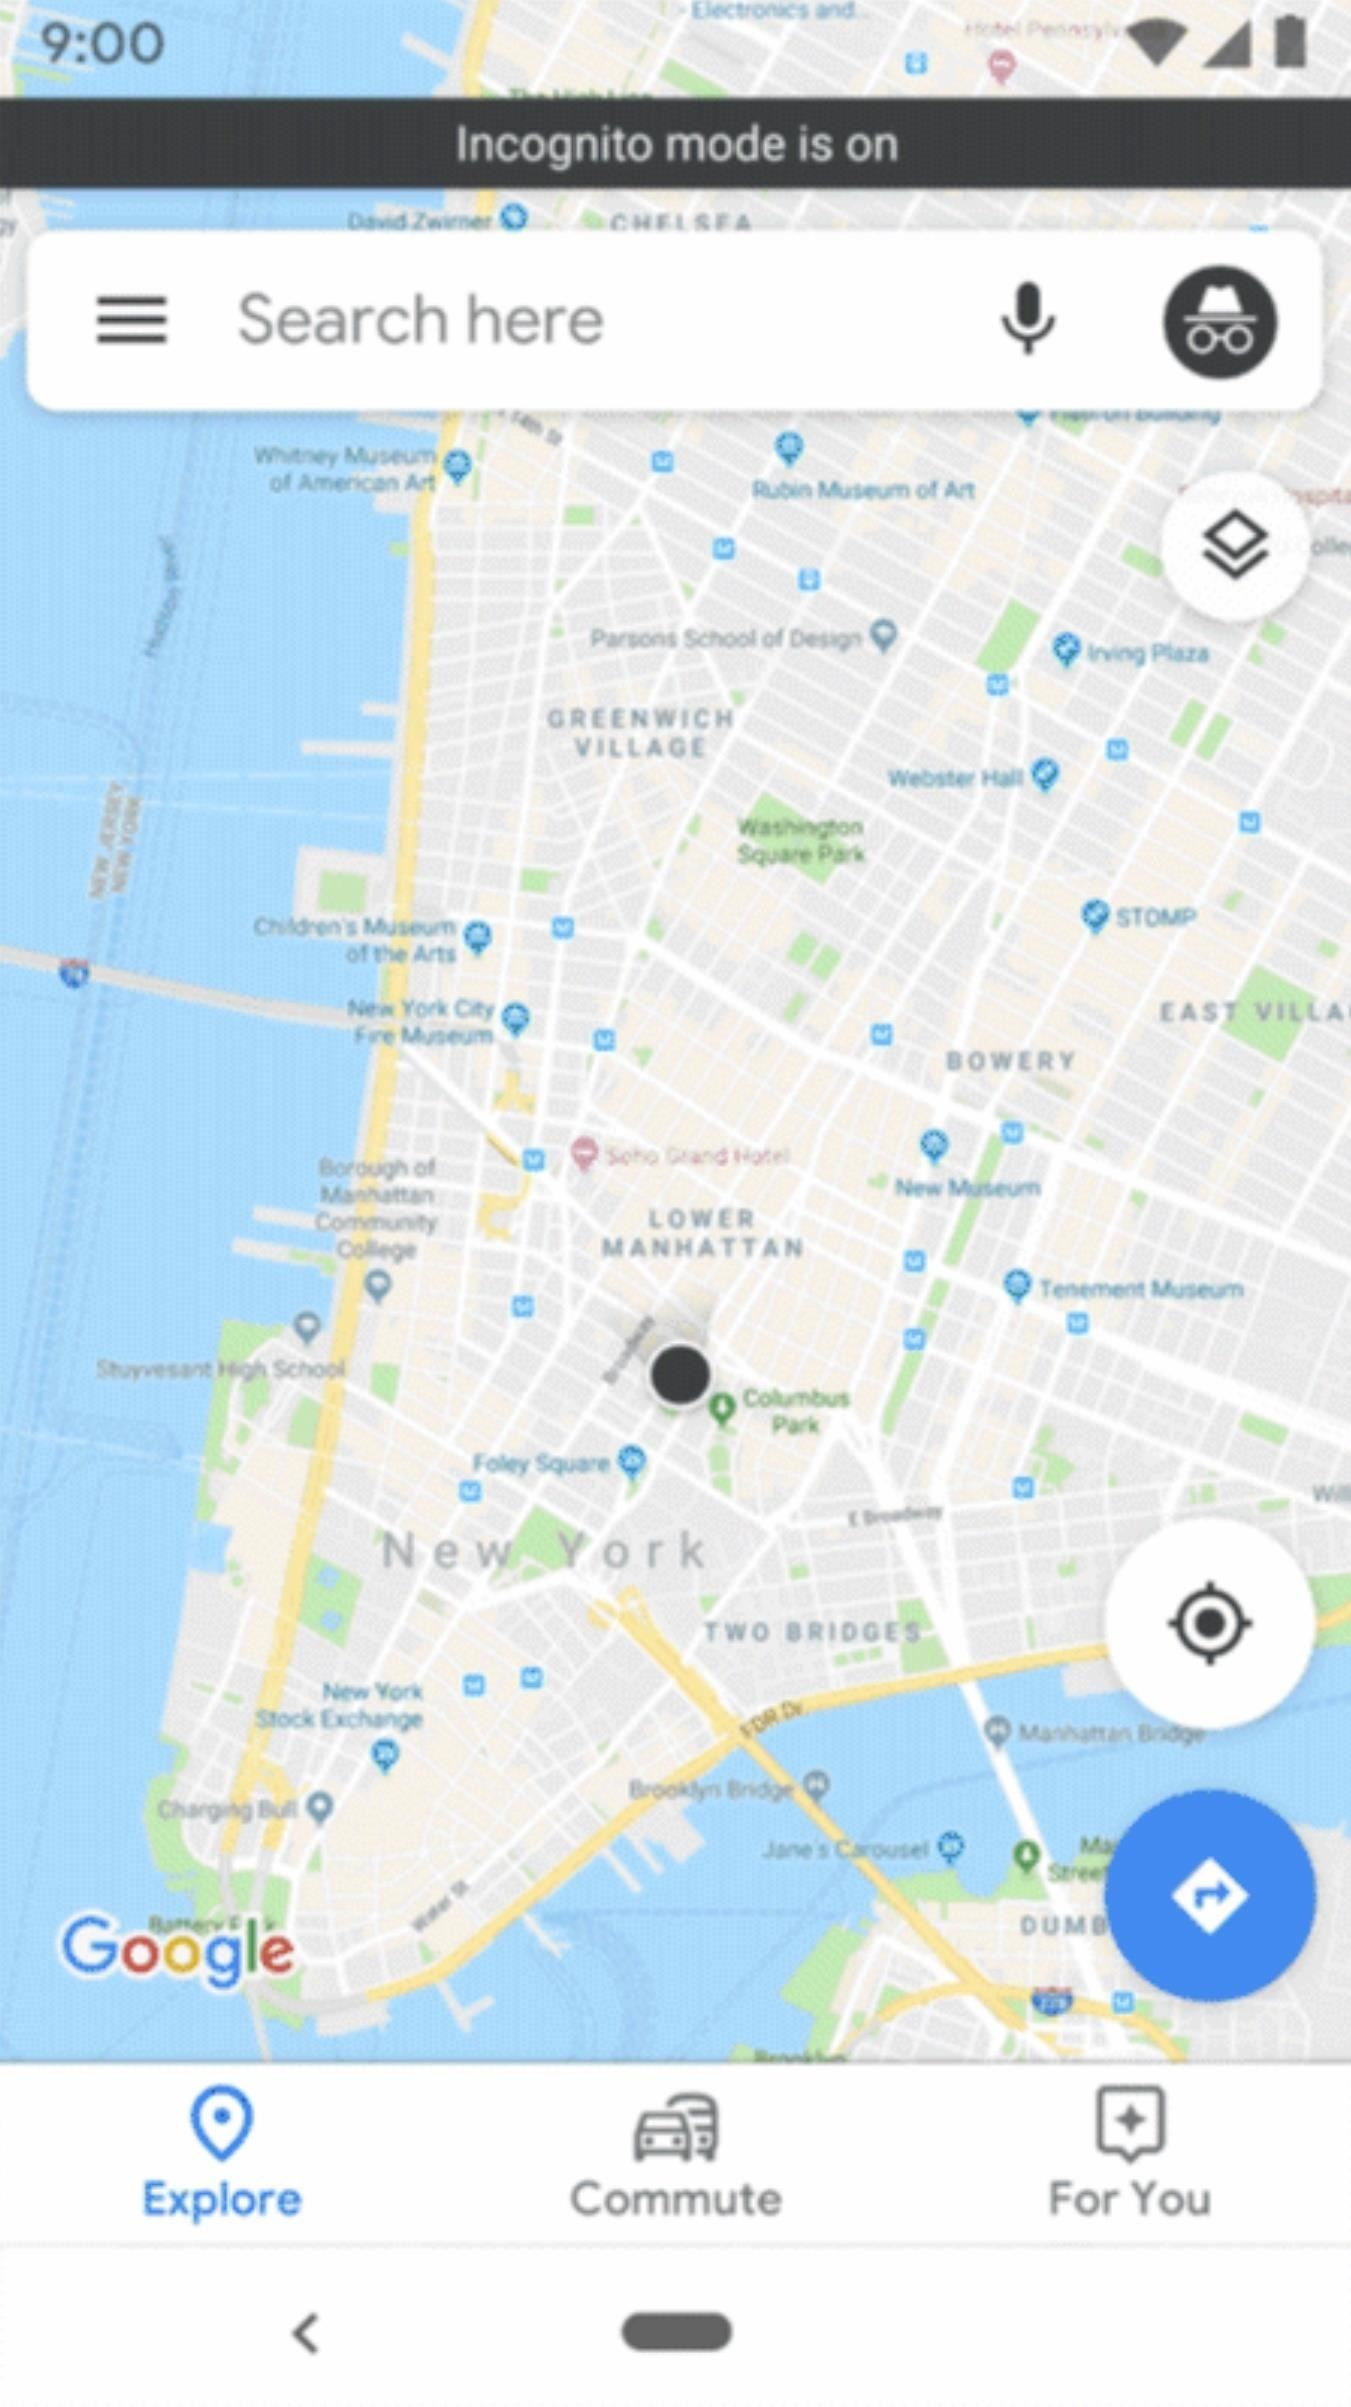 Coming Soon: Use Incognito Mode in Google Maps to Keep Your Location Searches & Navigation Totally Private